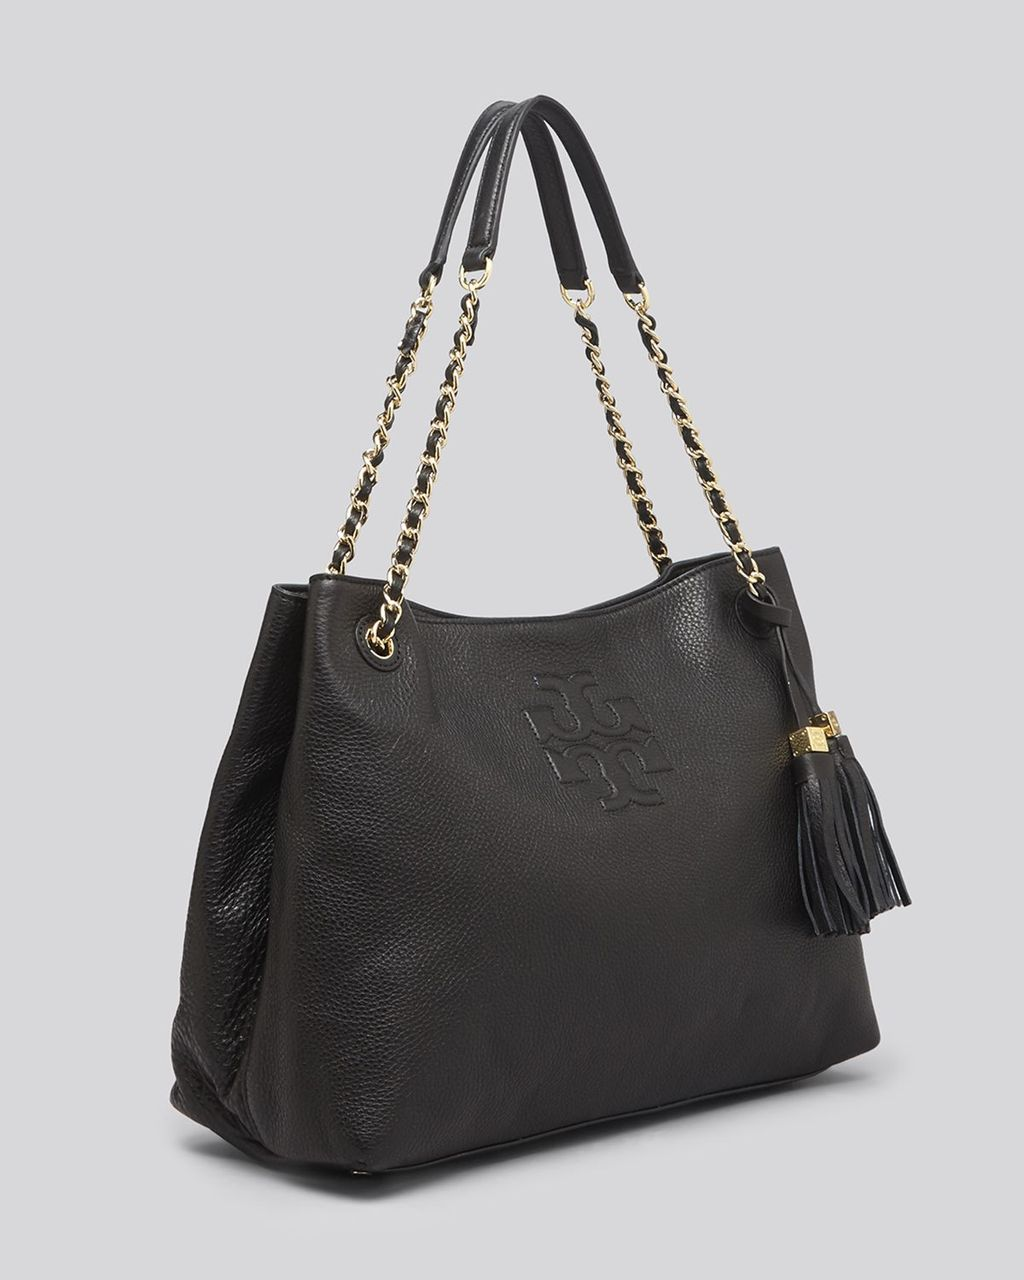 tory-burch-black-tote-thea-chain-shoulder-slouchy-product-1-20452410-2-930399071-normal.jpeg